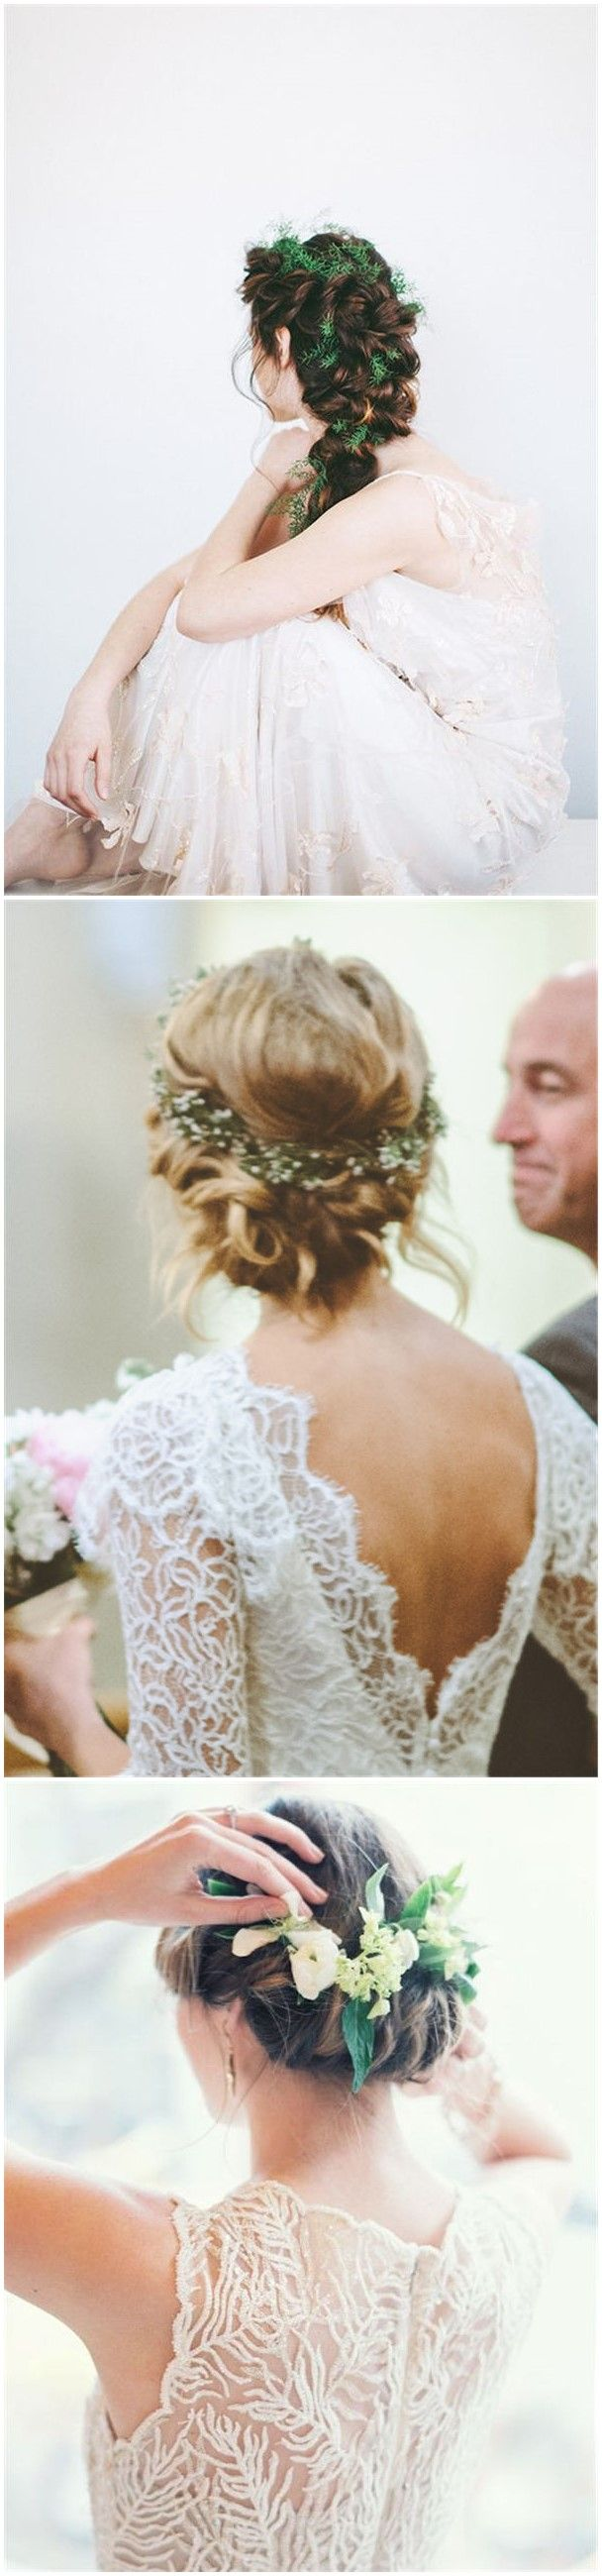 2445 best Bridal Hair | Wedding Hairpieces & Hairstyles || images on ...